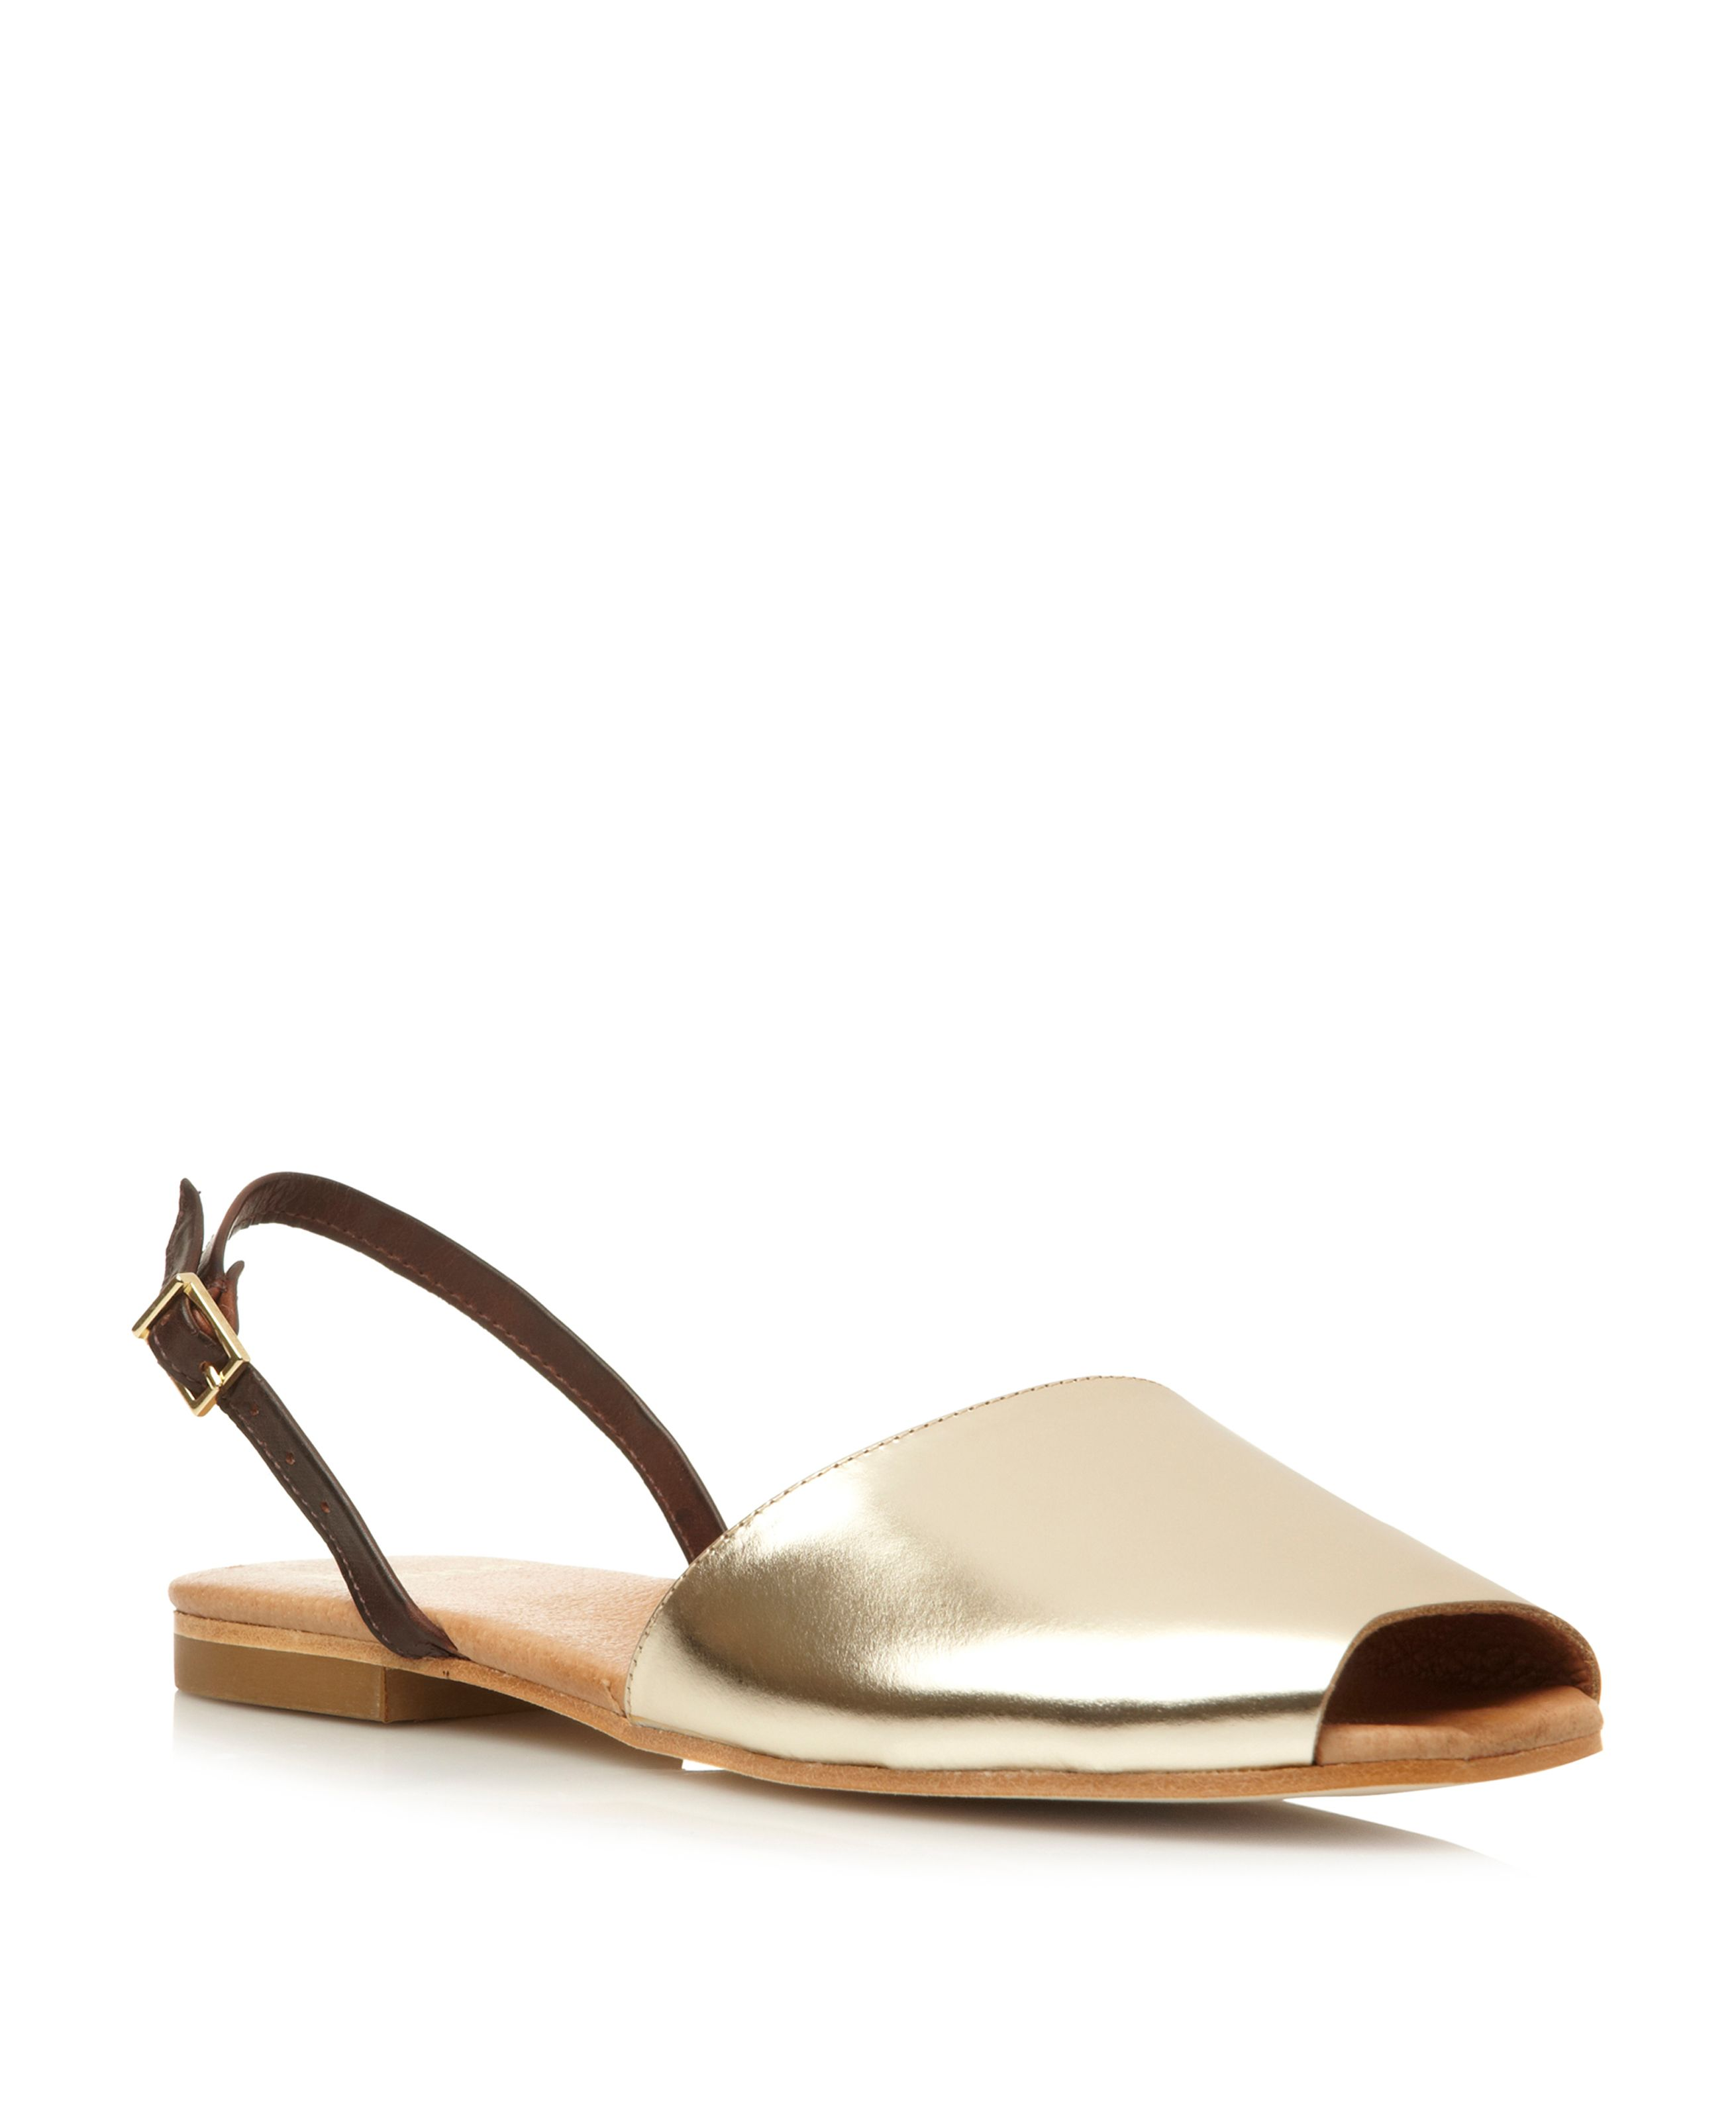 Leticia leather peeptoe flat shoes